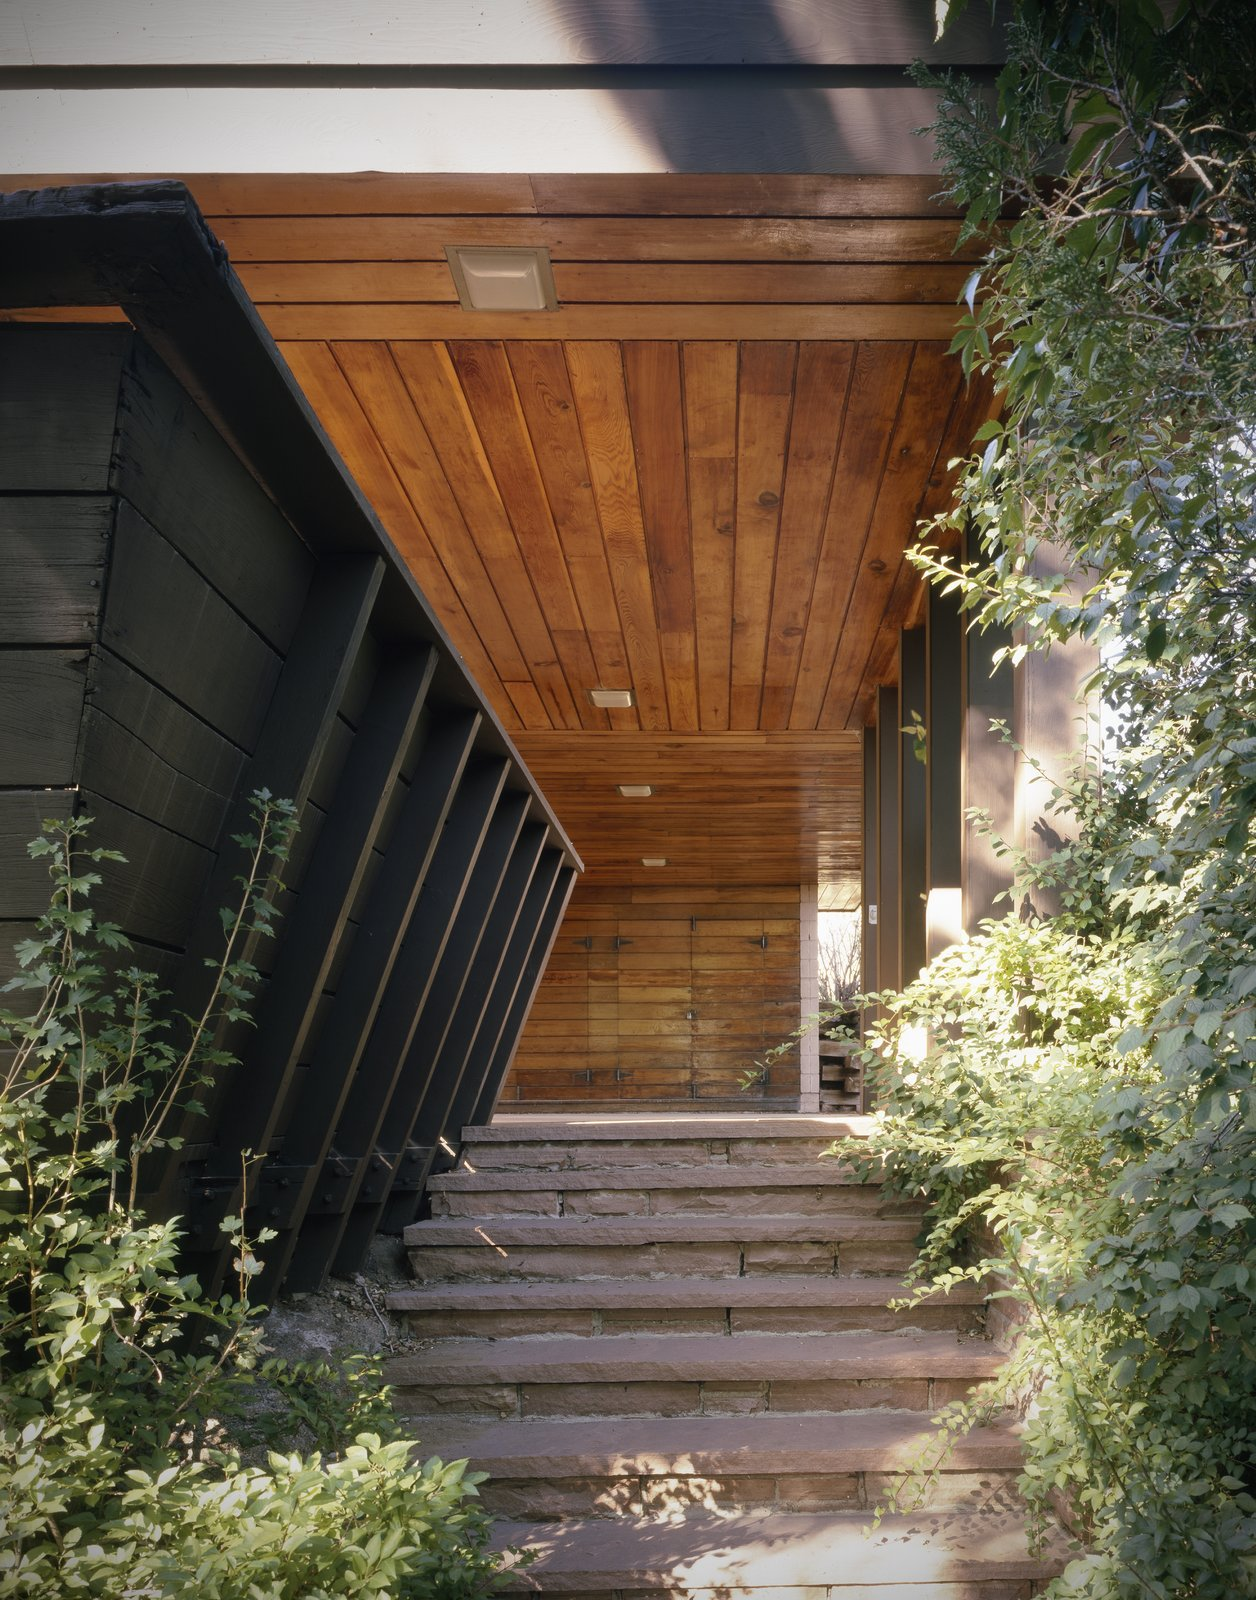 This is the first of two homes designed for the Vradenburg family by Ingraham and Ingraham, Architects. The overhang here serves as both coverage for the entrance and carport. Like Frank Lloyd Wright's designs, Ingraham tucked away her unusual entrances from obvious view.  Photo 2 of 5 in An Architect in Her Own Wright